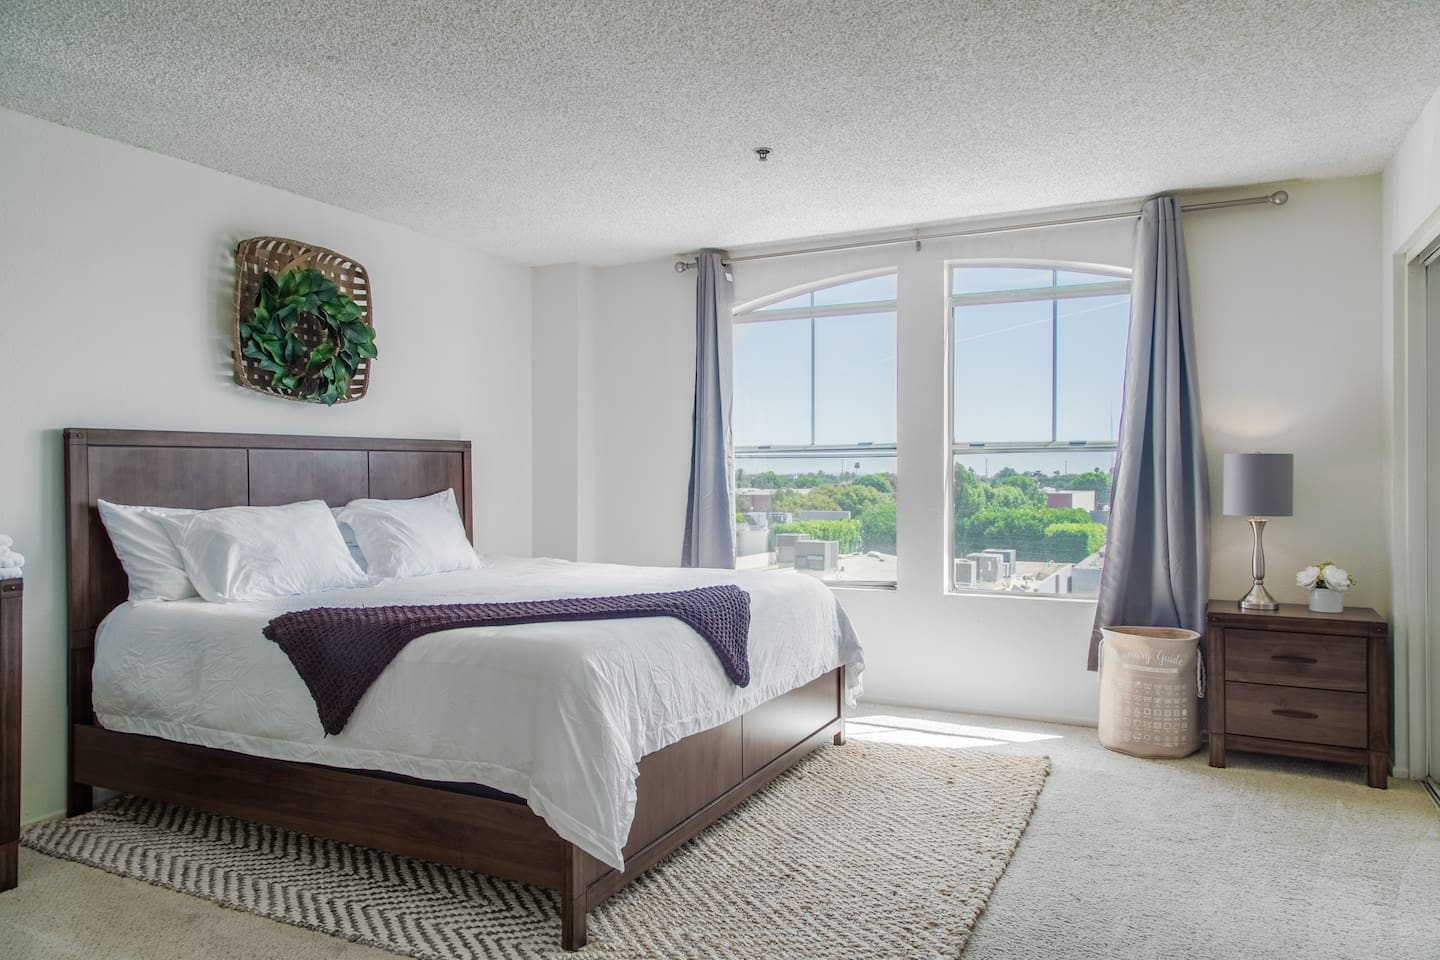 Master bedroom with a great view.